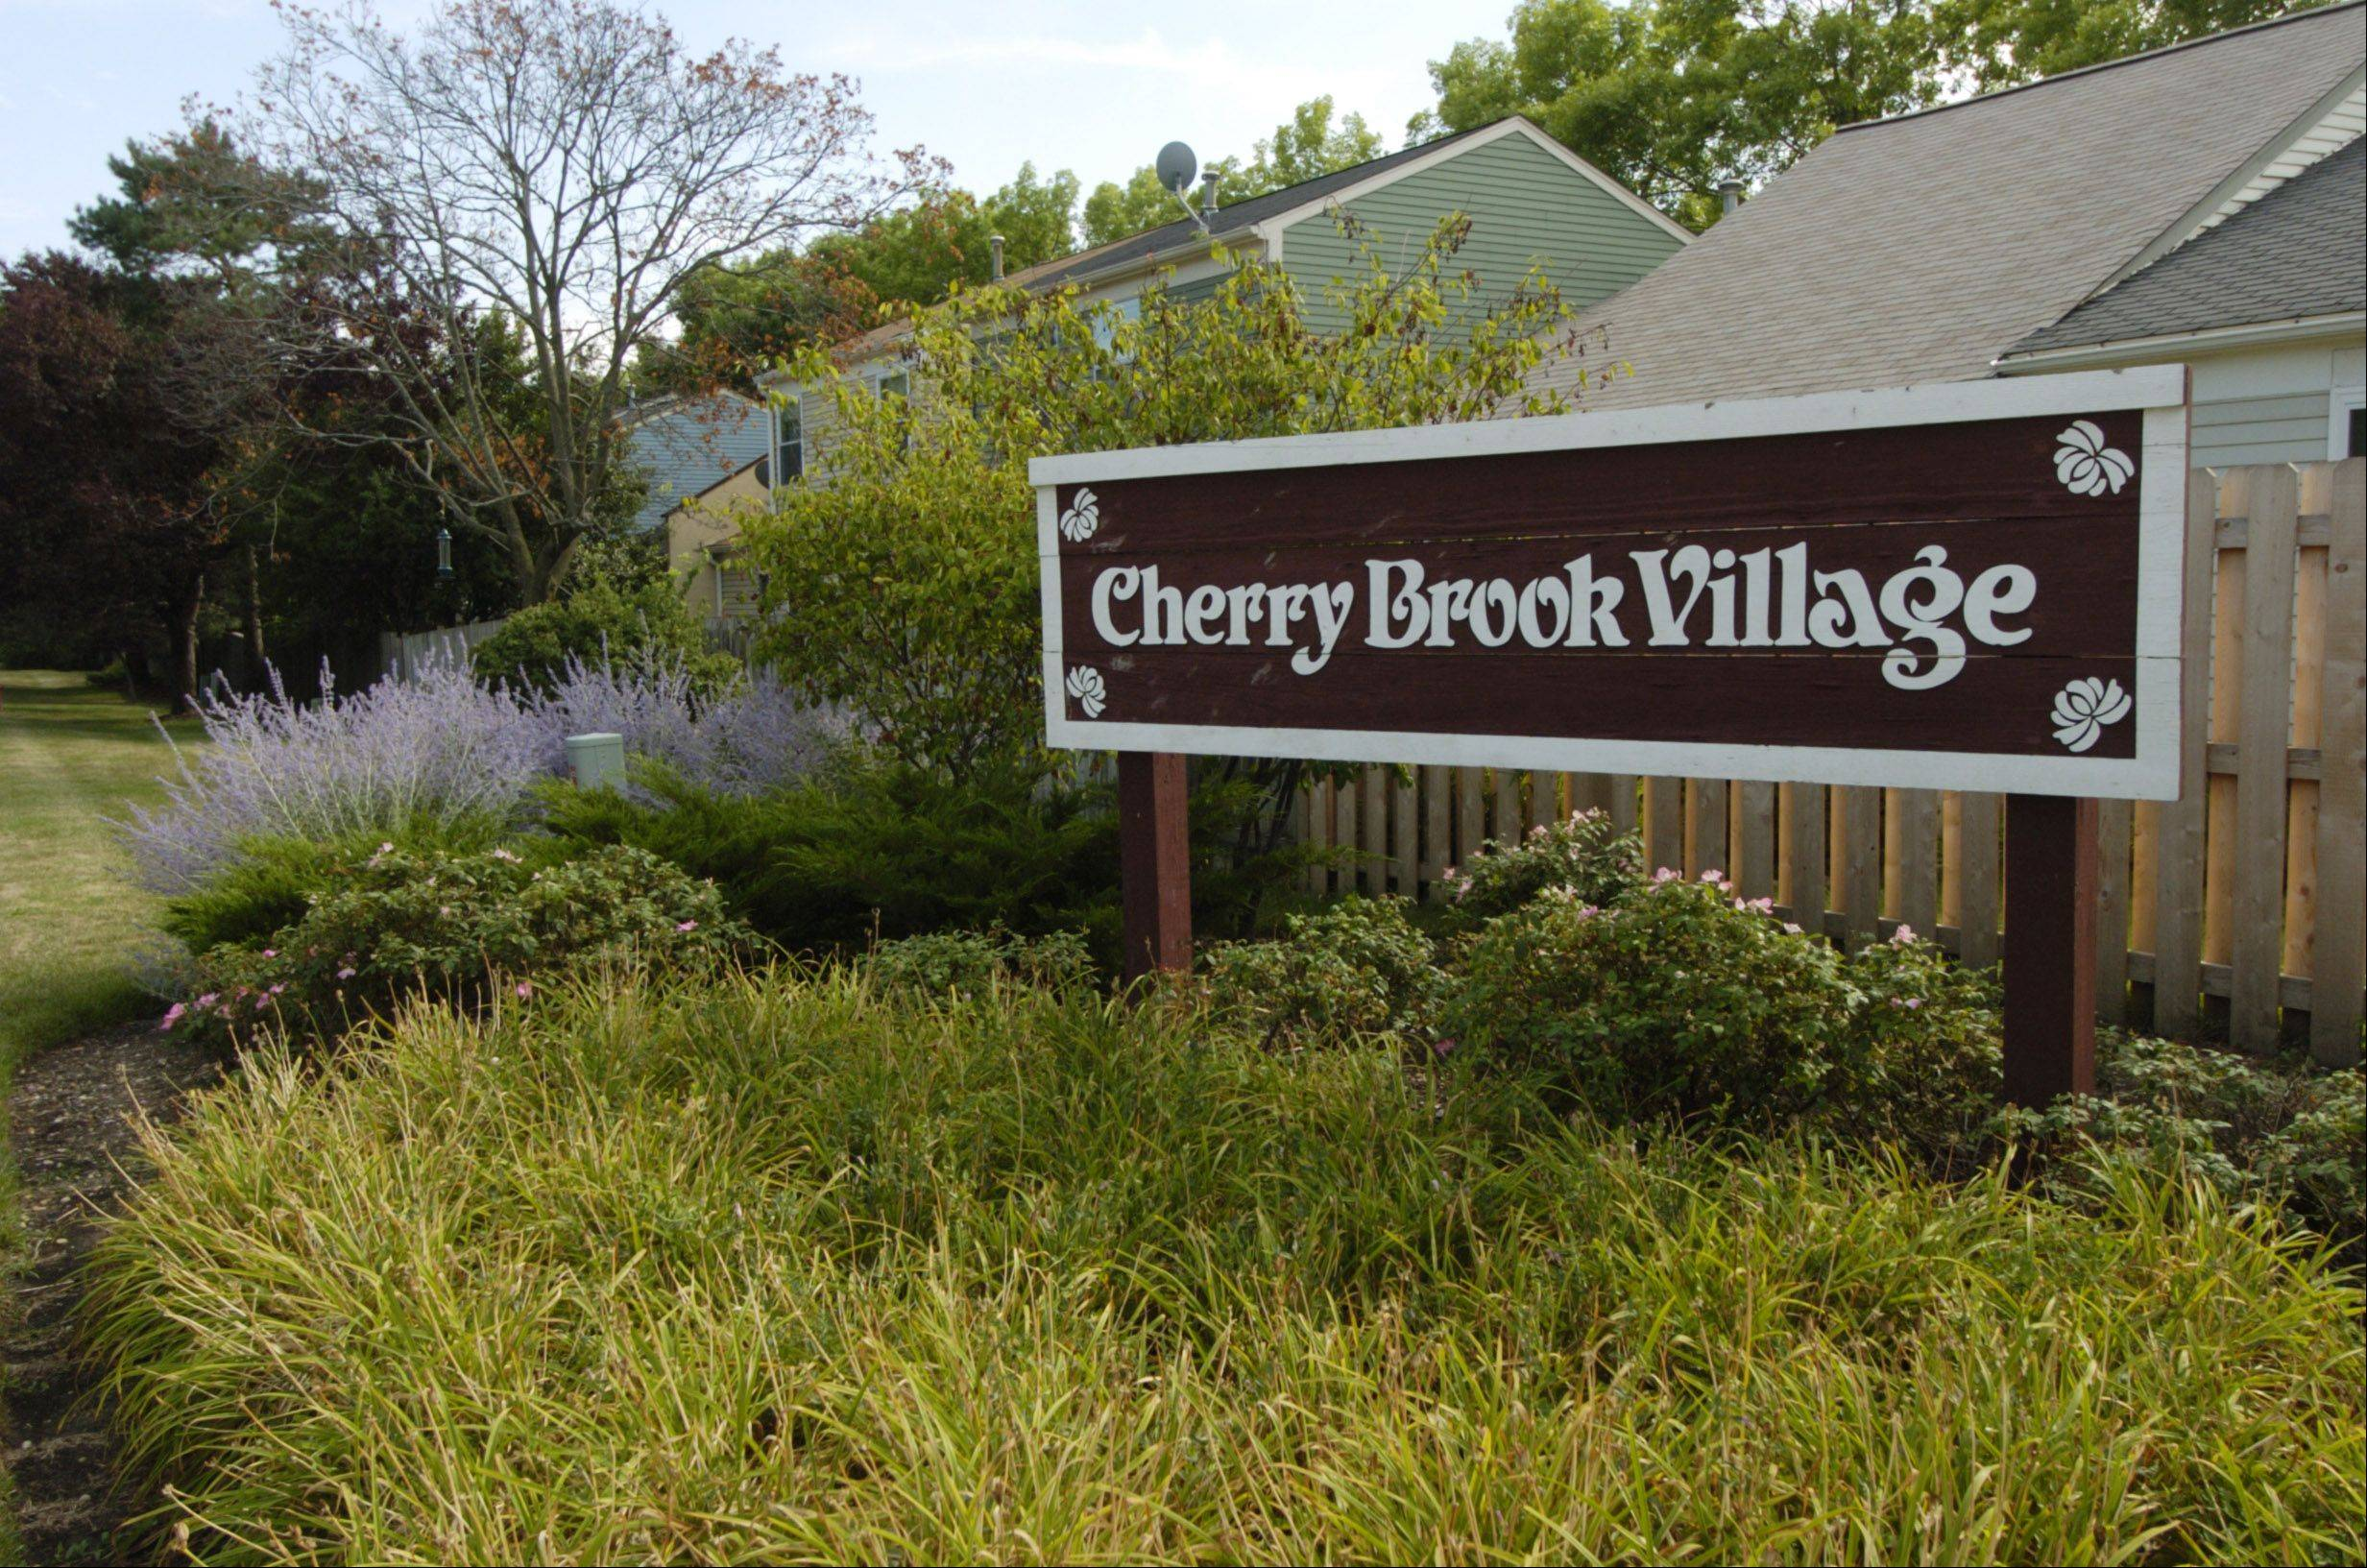 CherryBrook Village in Palatine was built in the mid-1980s.